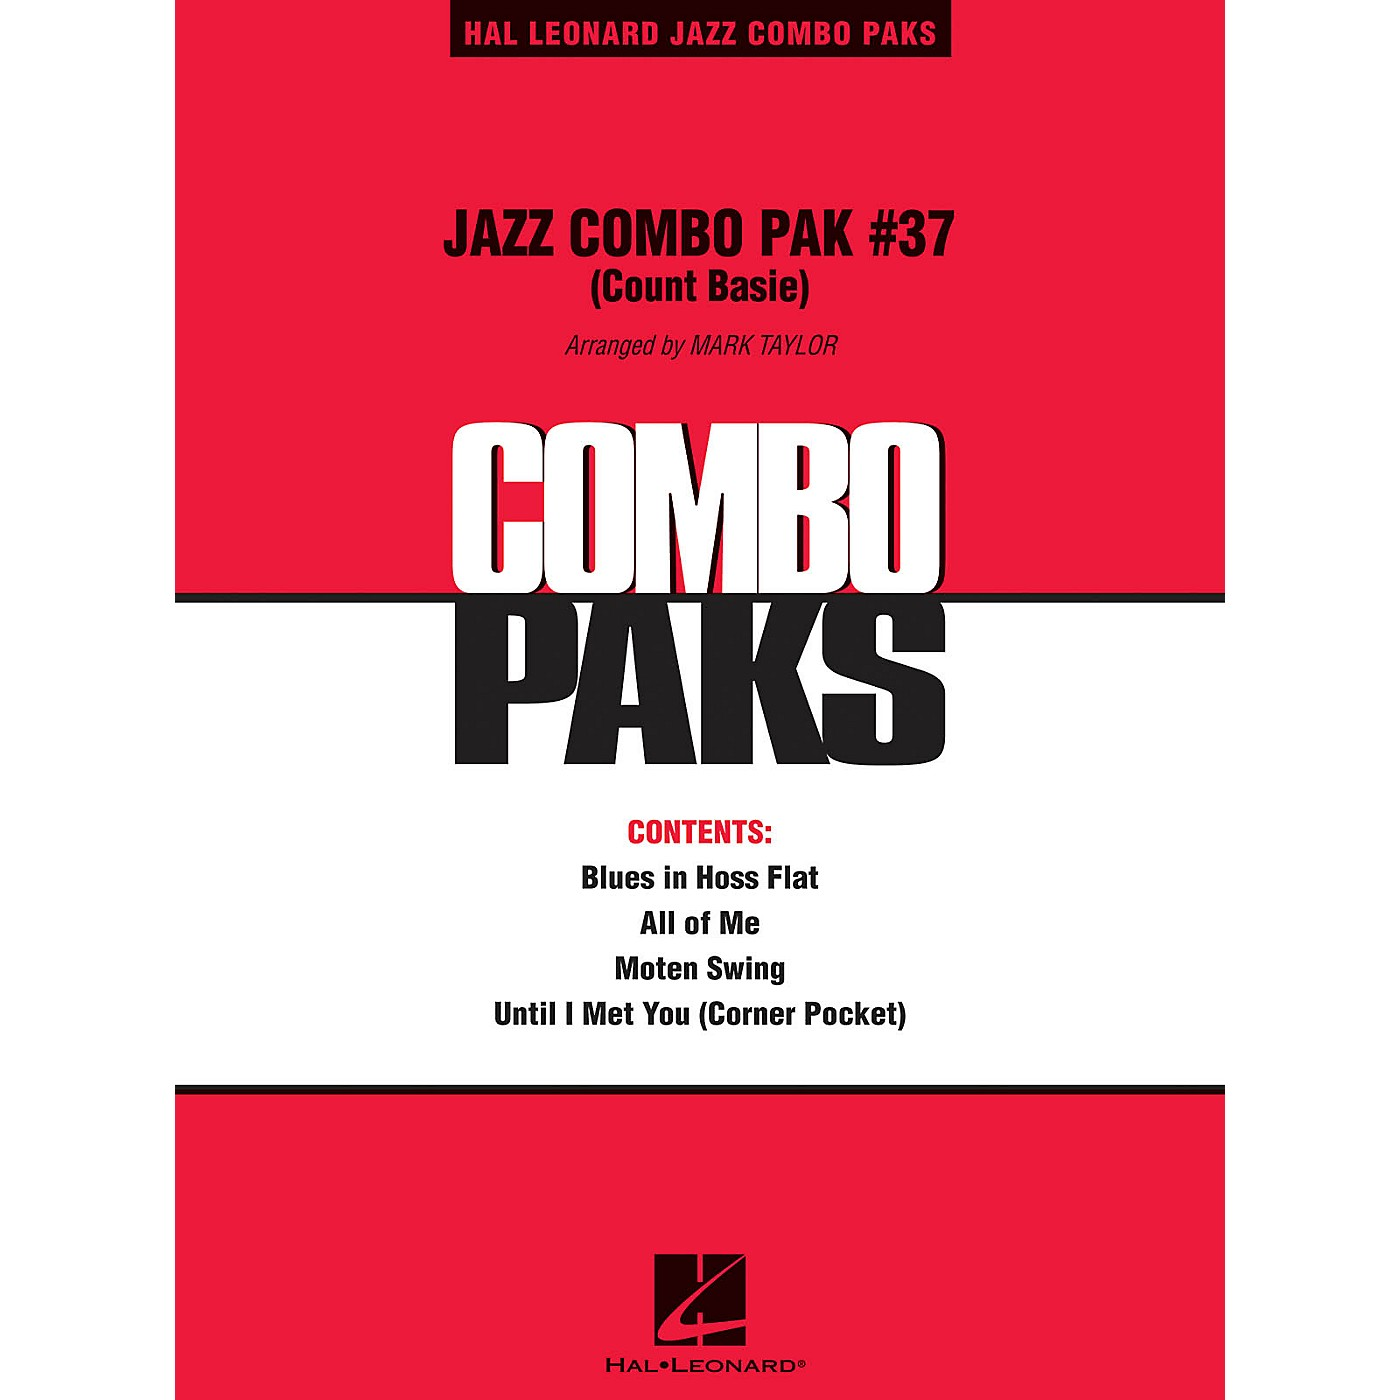 Hal Leonard Jazz Combo Pak #37 (Count Basie) Jazz Band Level 3 by Count Basie Arranged by Mark Taylor thumbnail